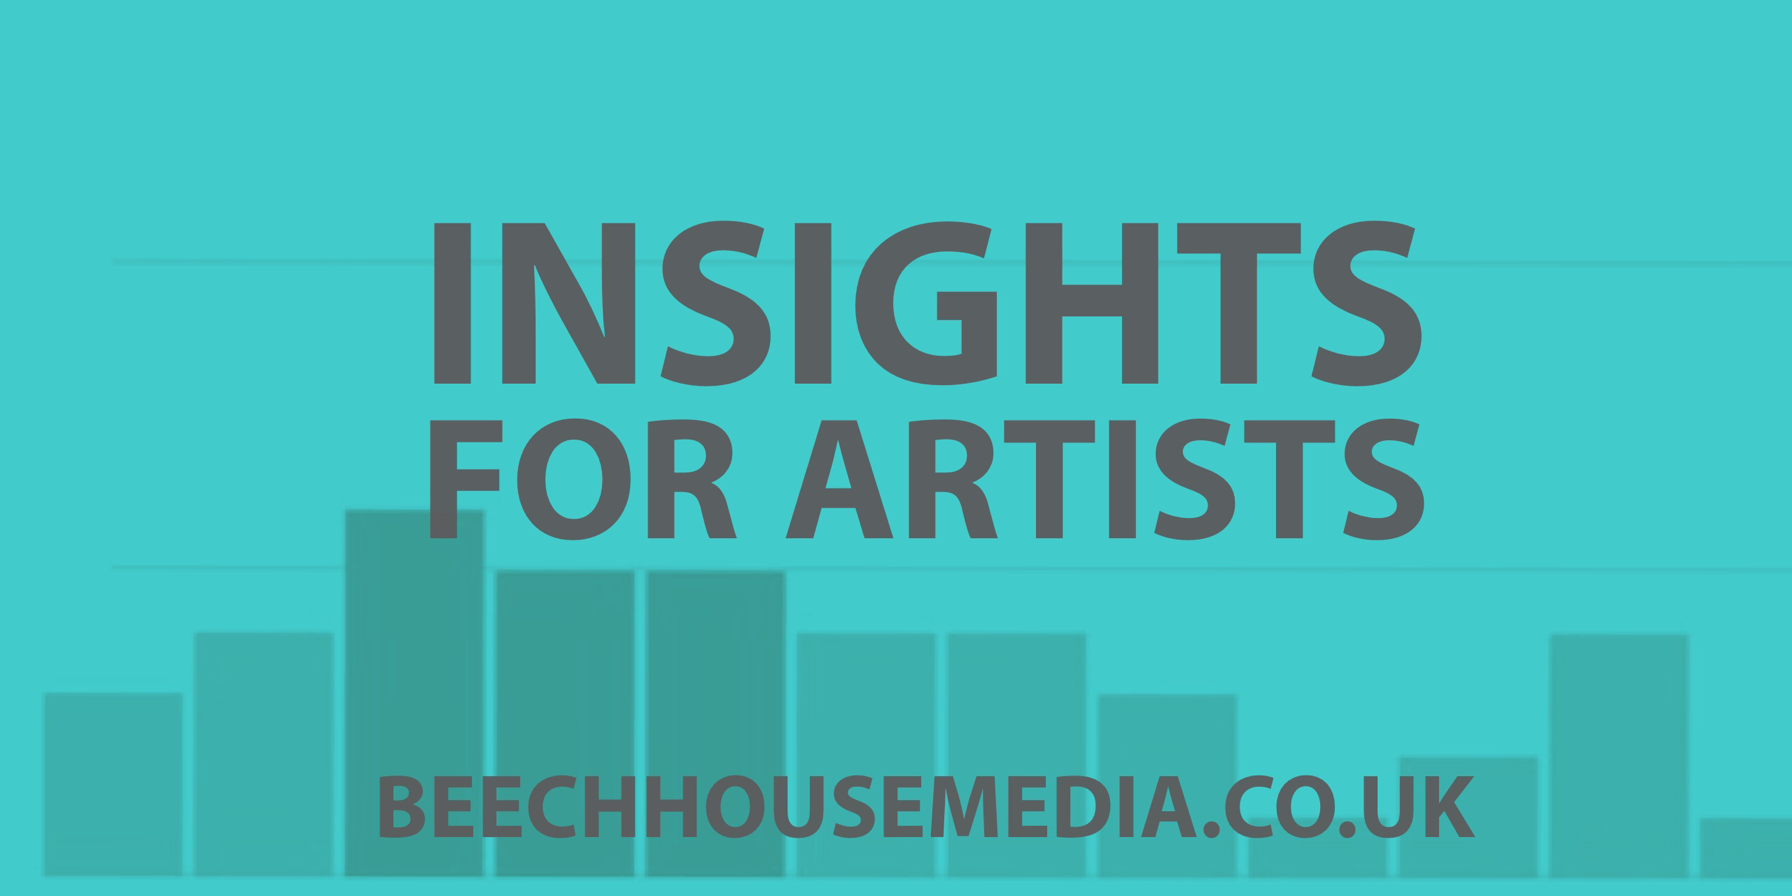 using Facebook Insights for artists